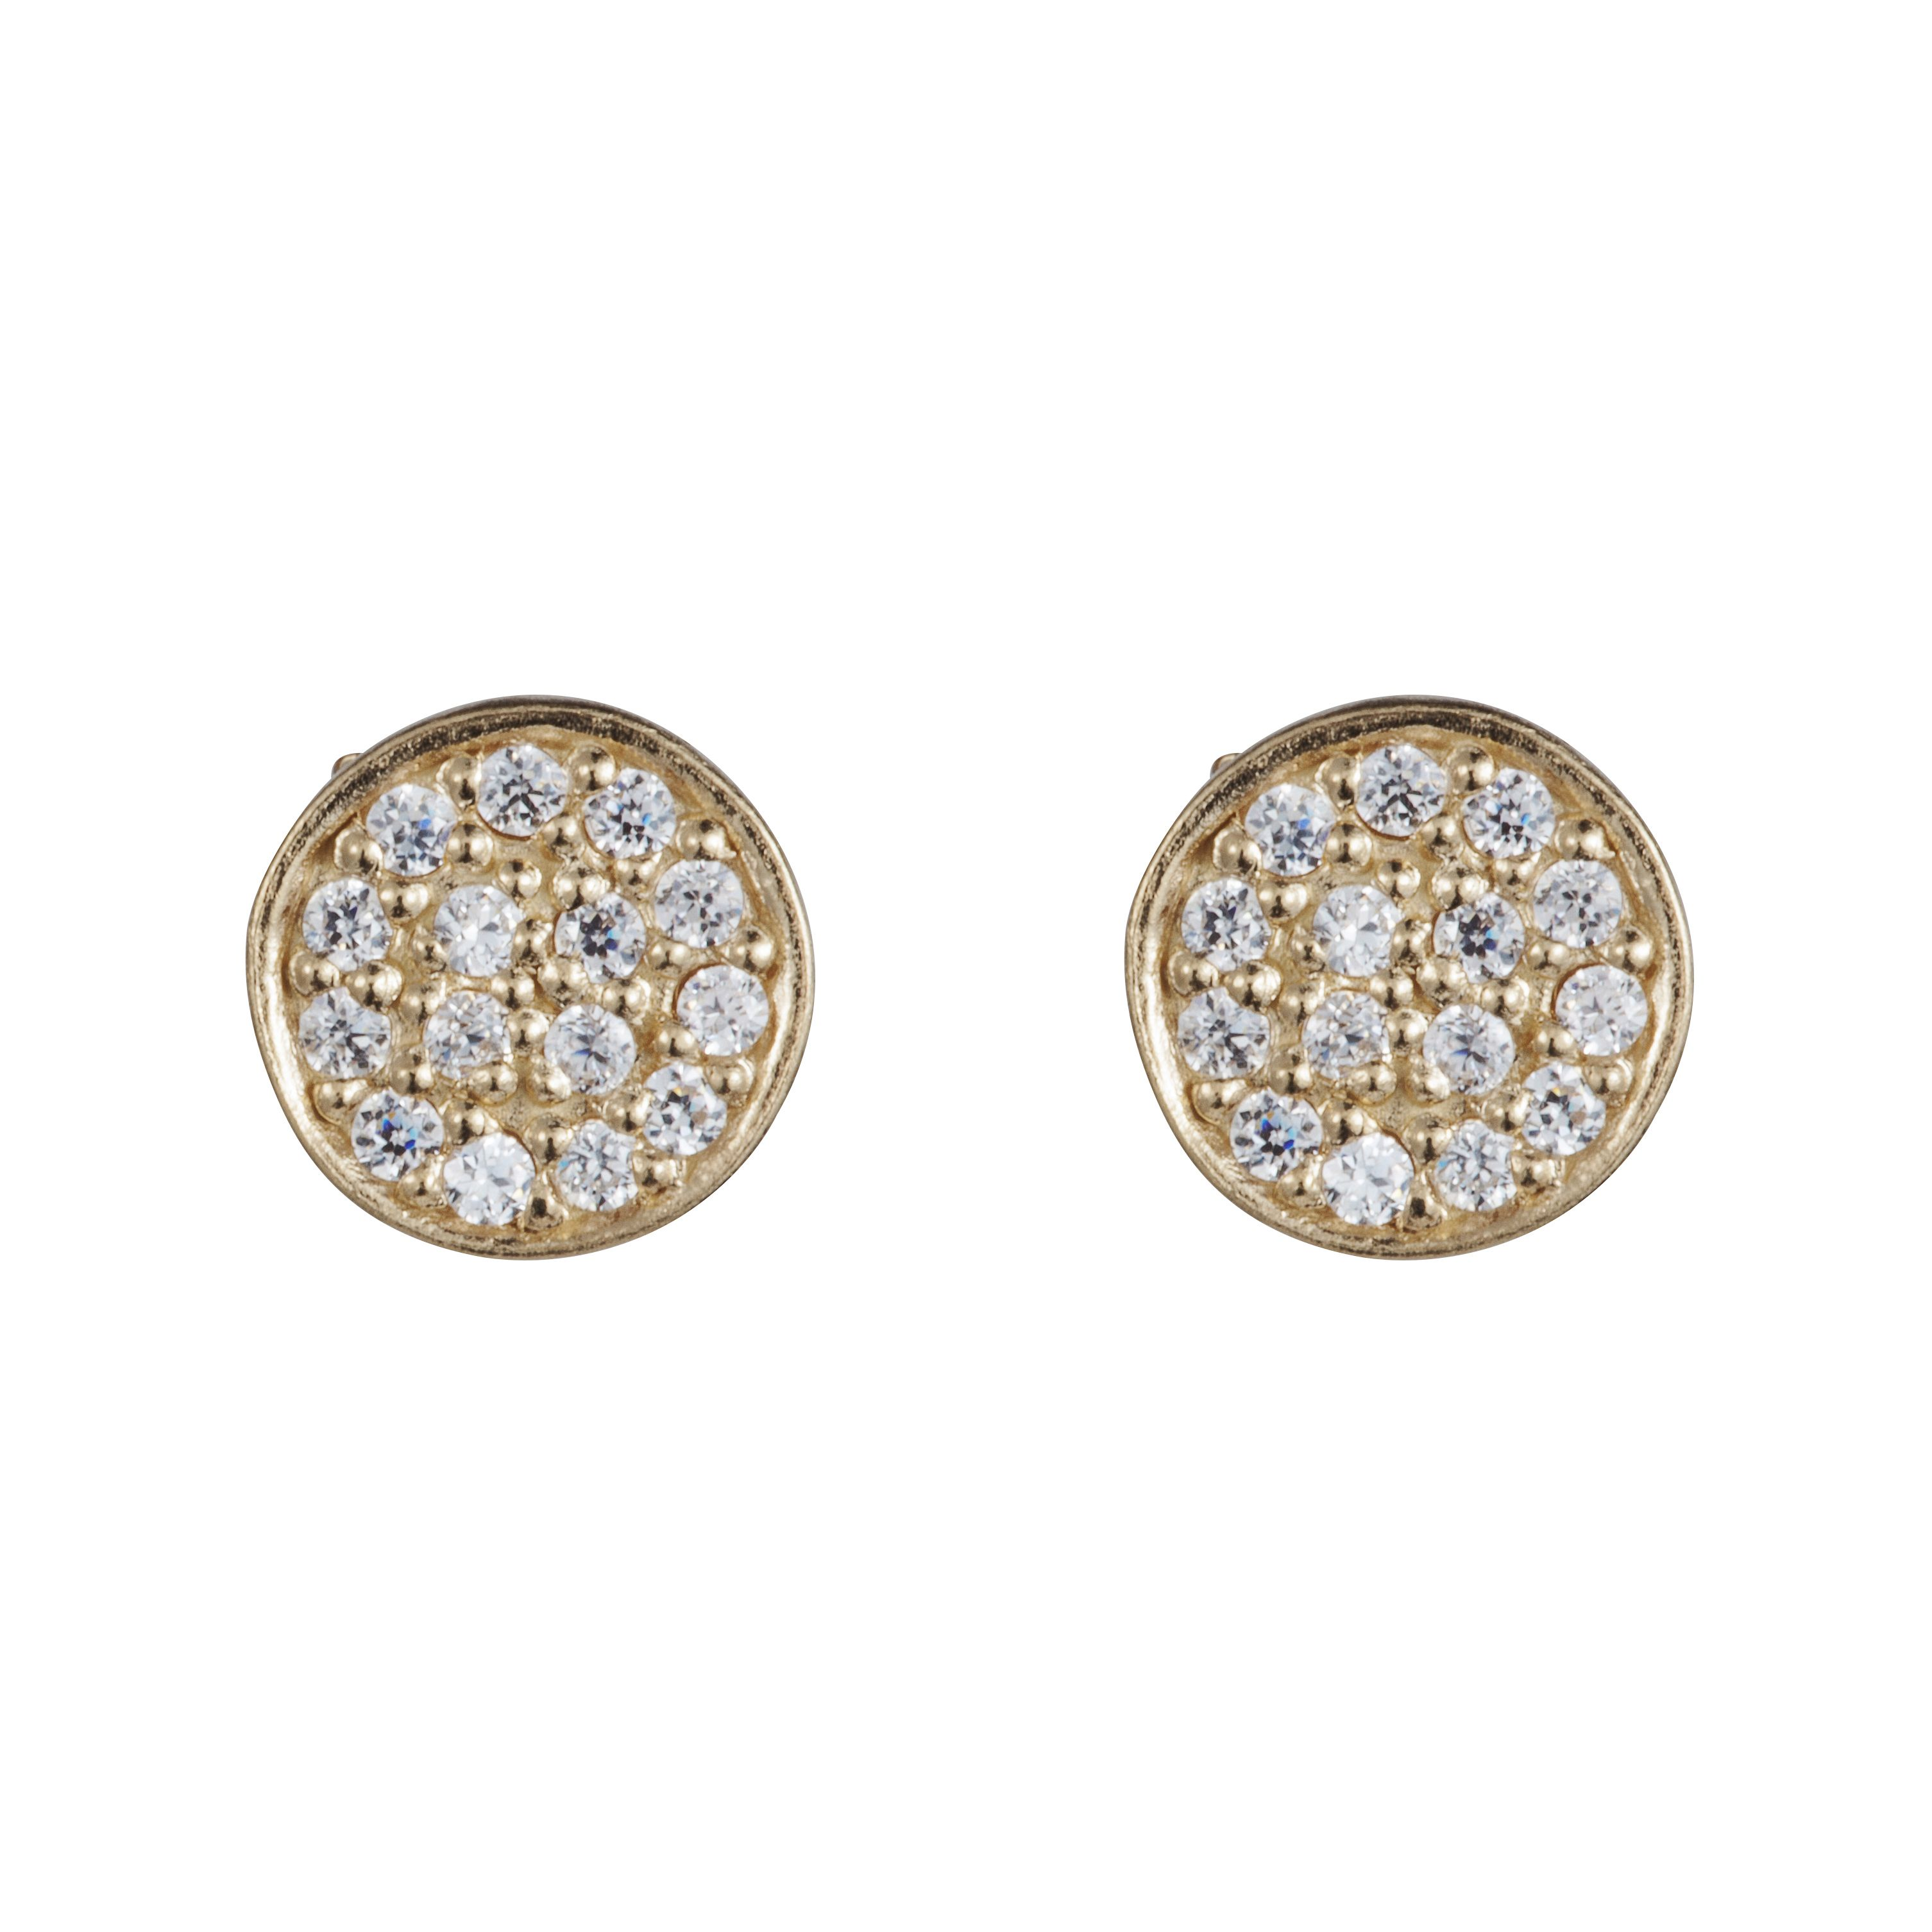 18ct gold plated sterling silver stud earrings